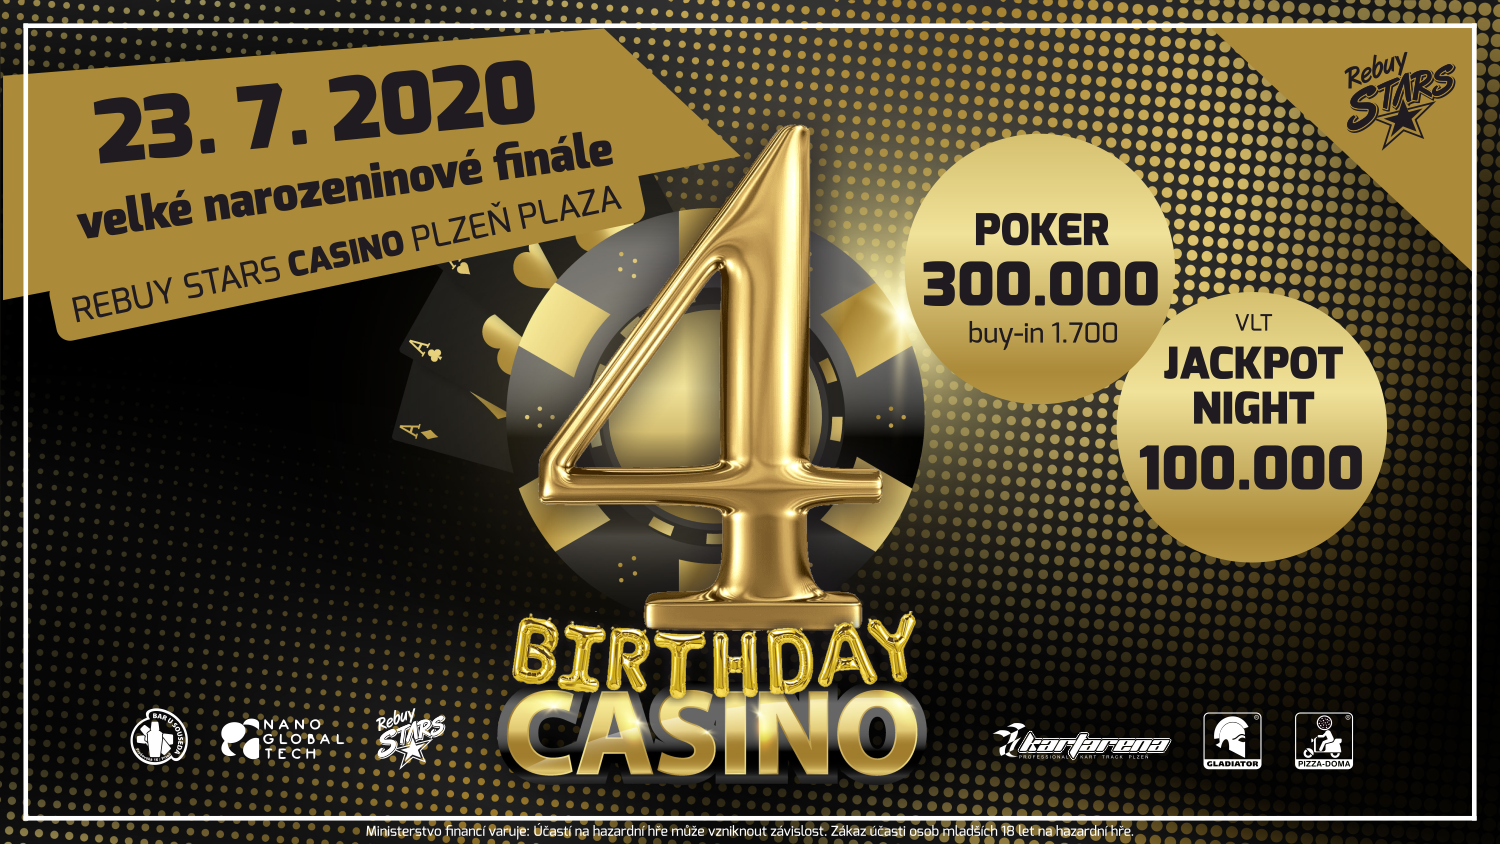 Rebuy Stars - casino - Plzen Plaza - banner - bday - party